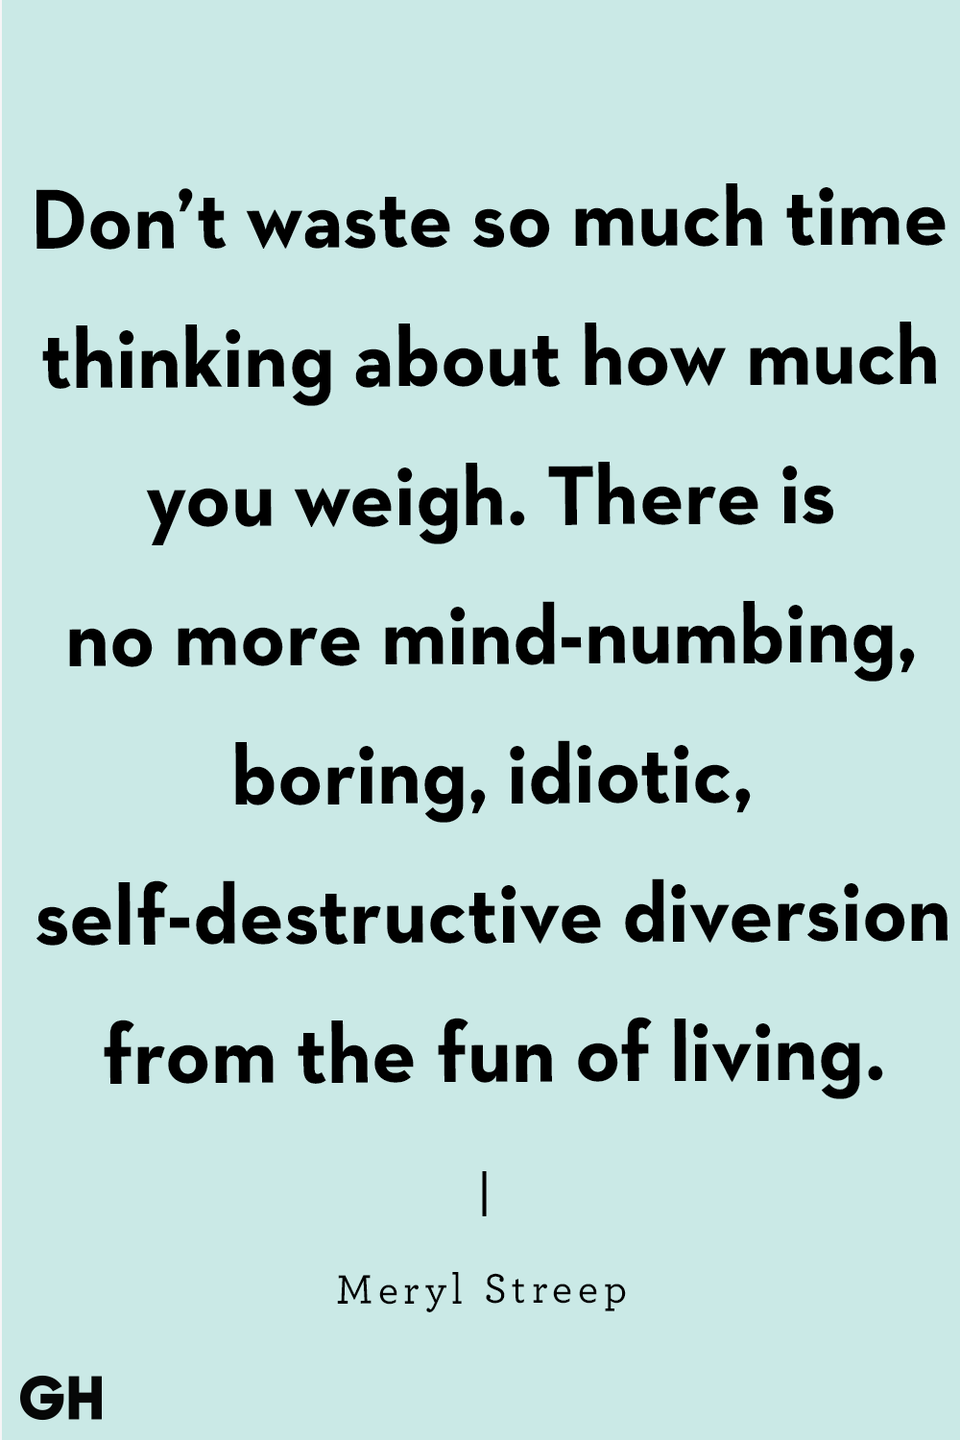 "<p>""Don't waste so much time thinking about how much you weigh. There is no more mind-numbing, boring, idiotic, self-destructive diversion from the fun of living."" </p>"